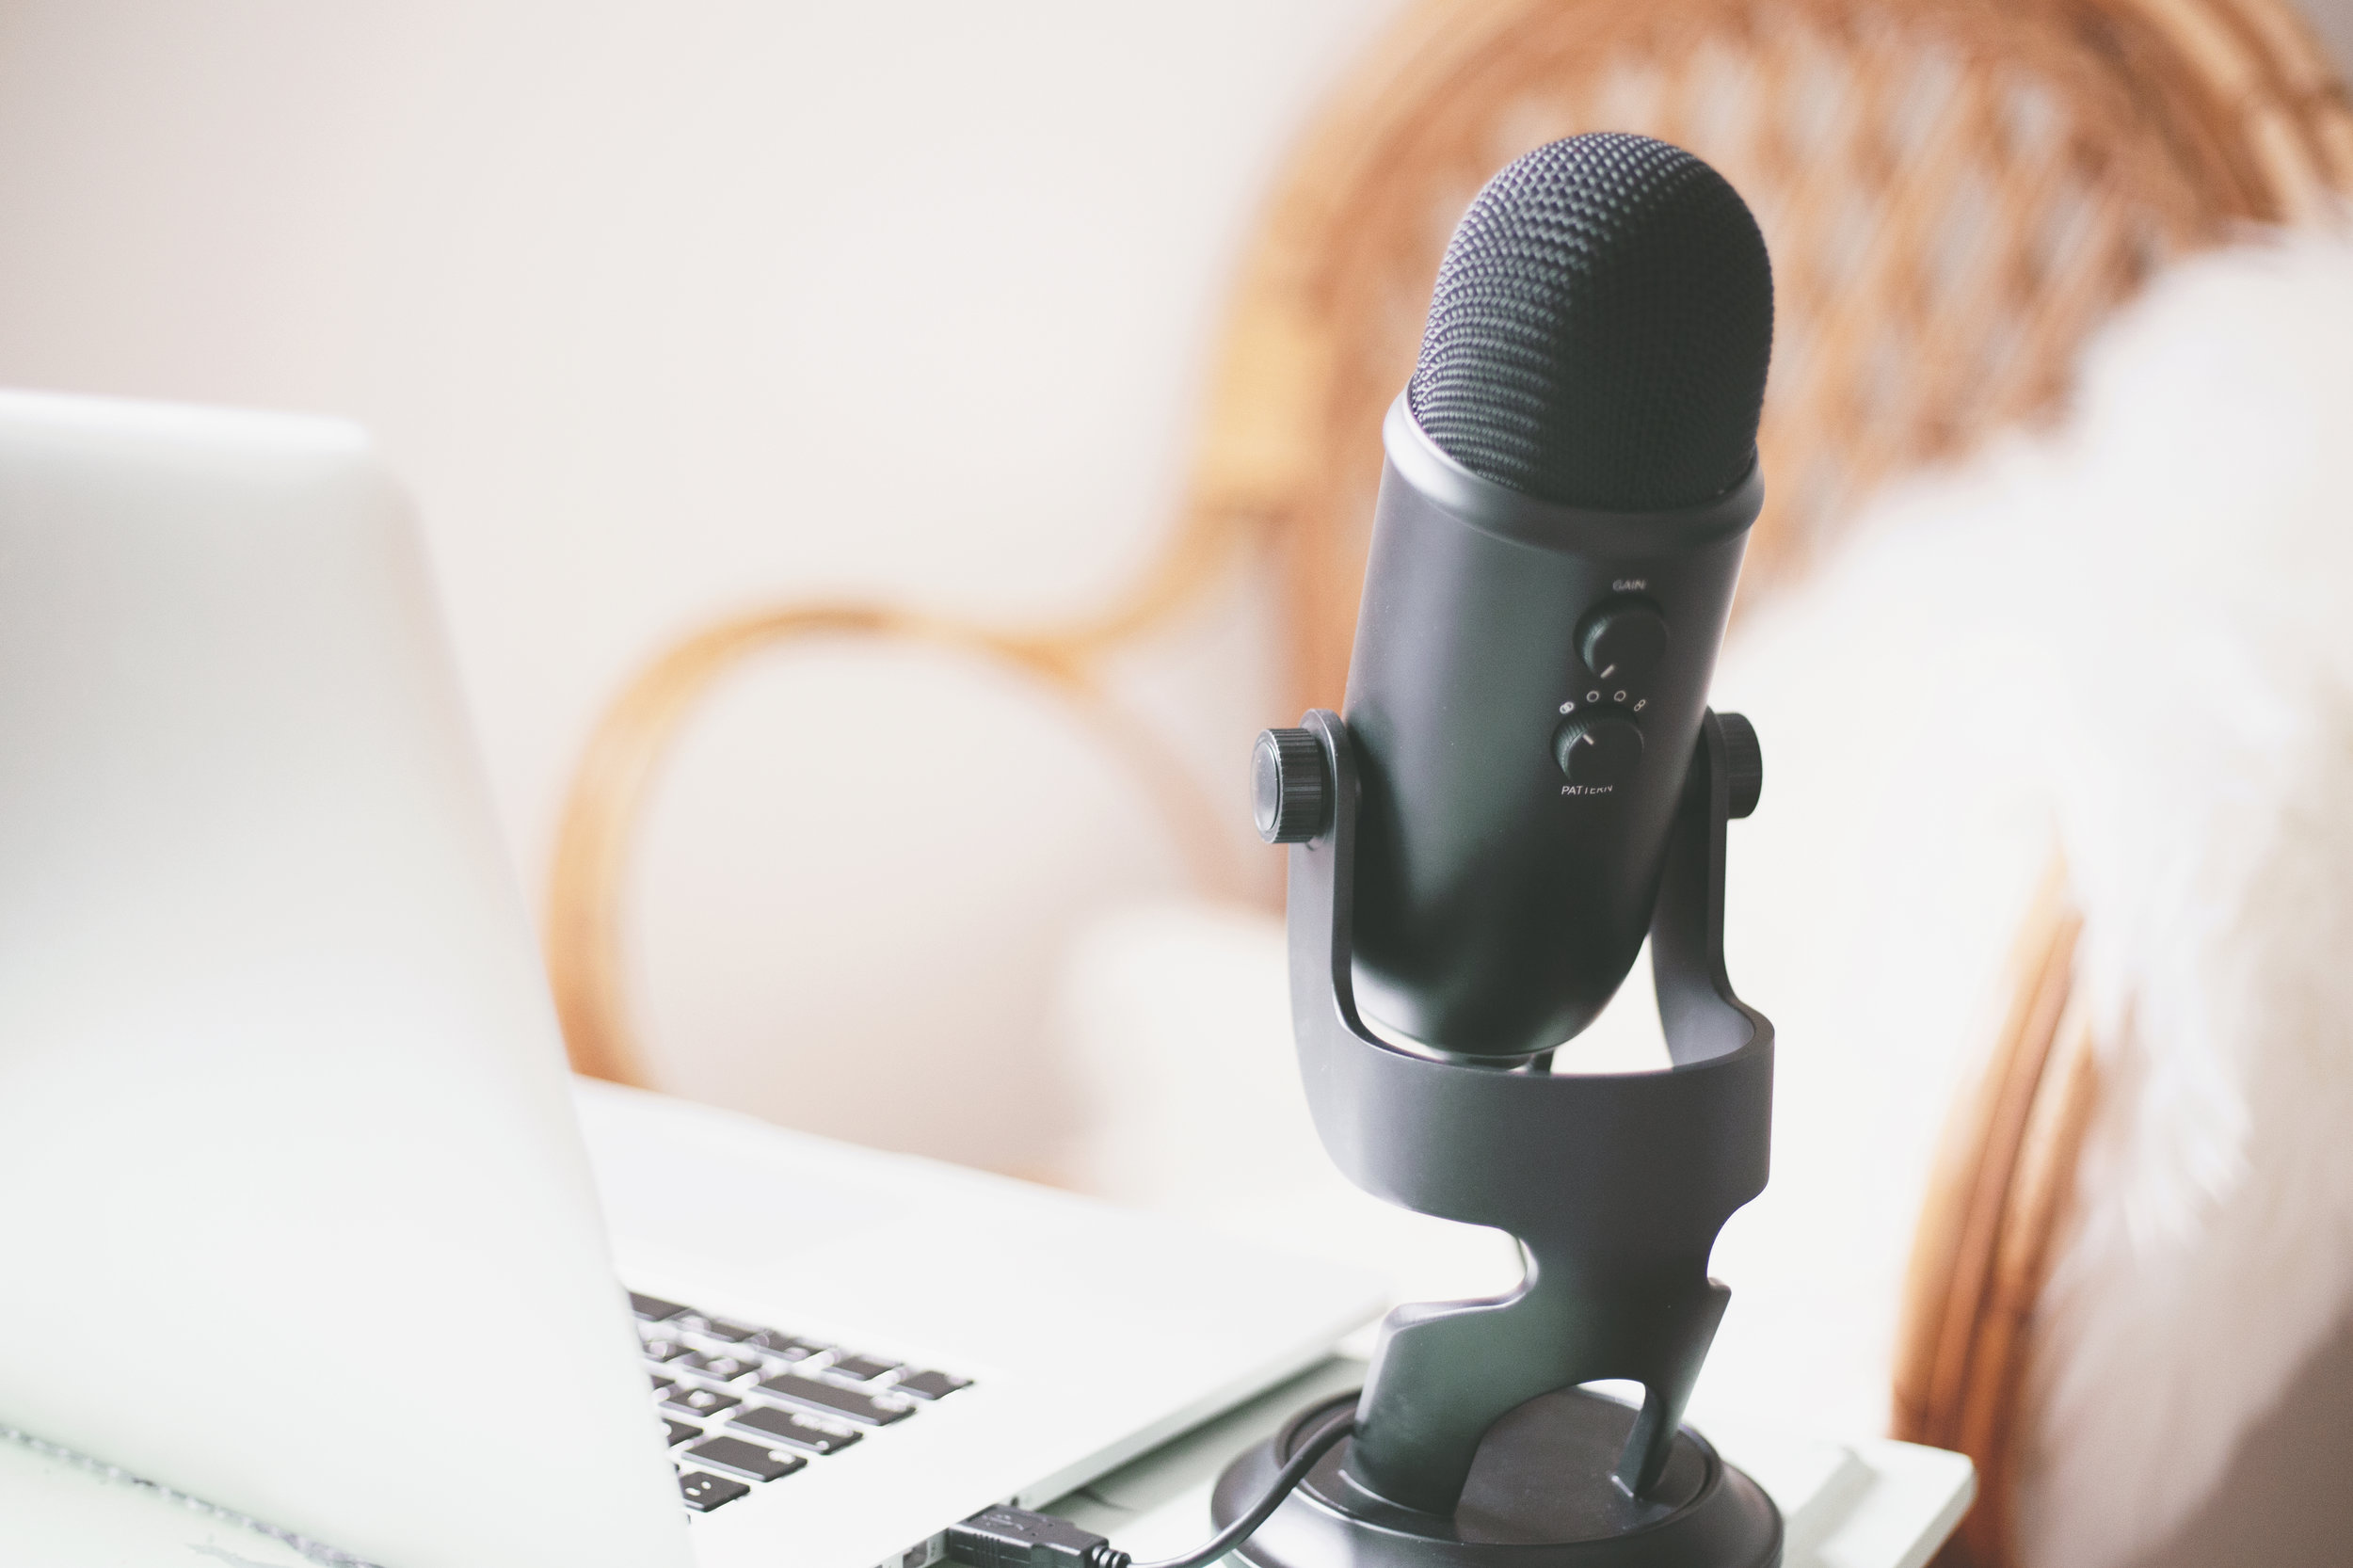 A USB microphone and a laptop, ready to go to start a podcast